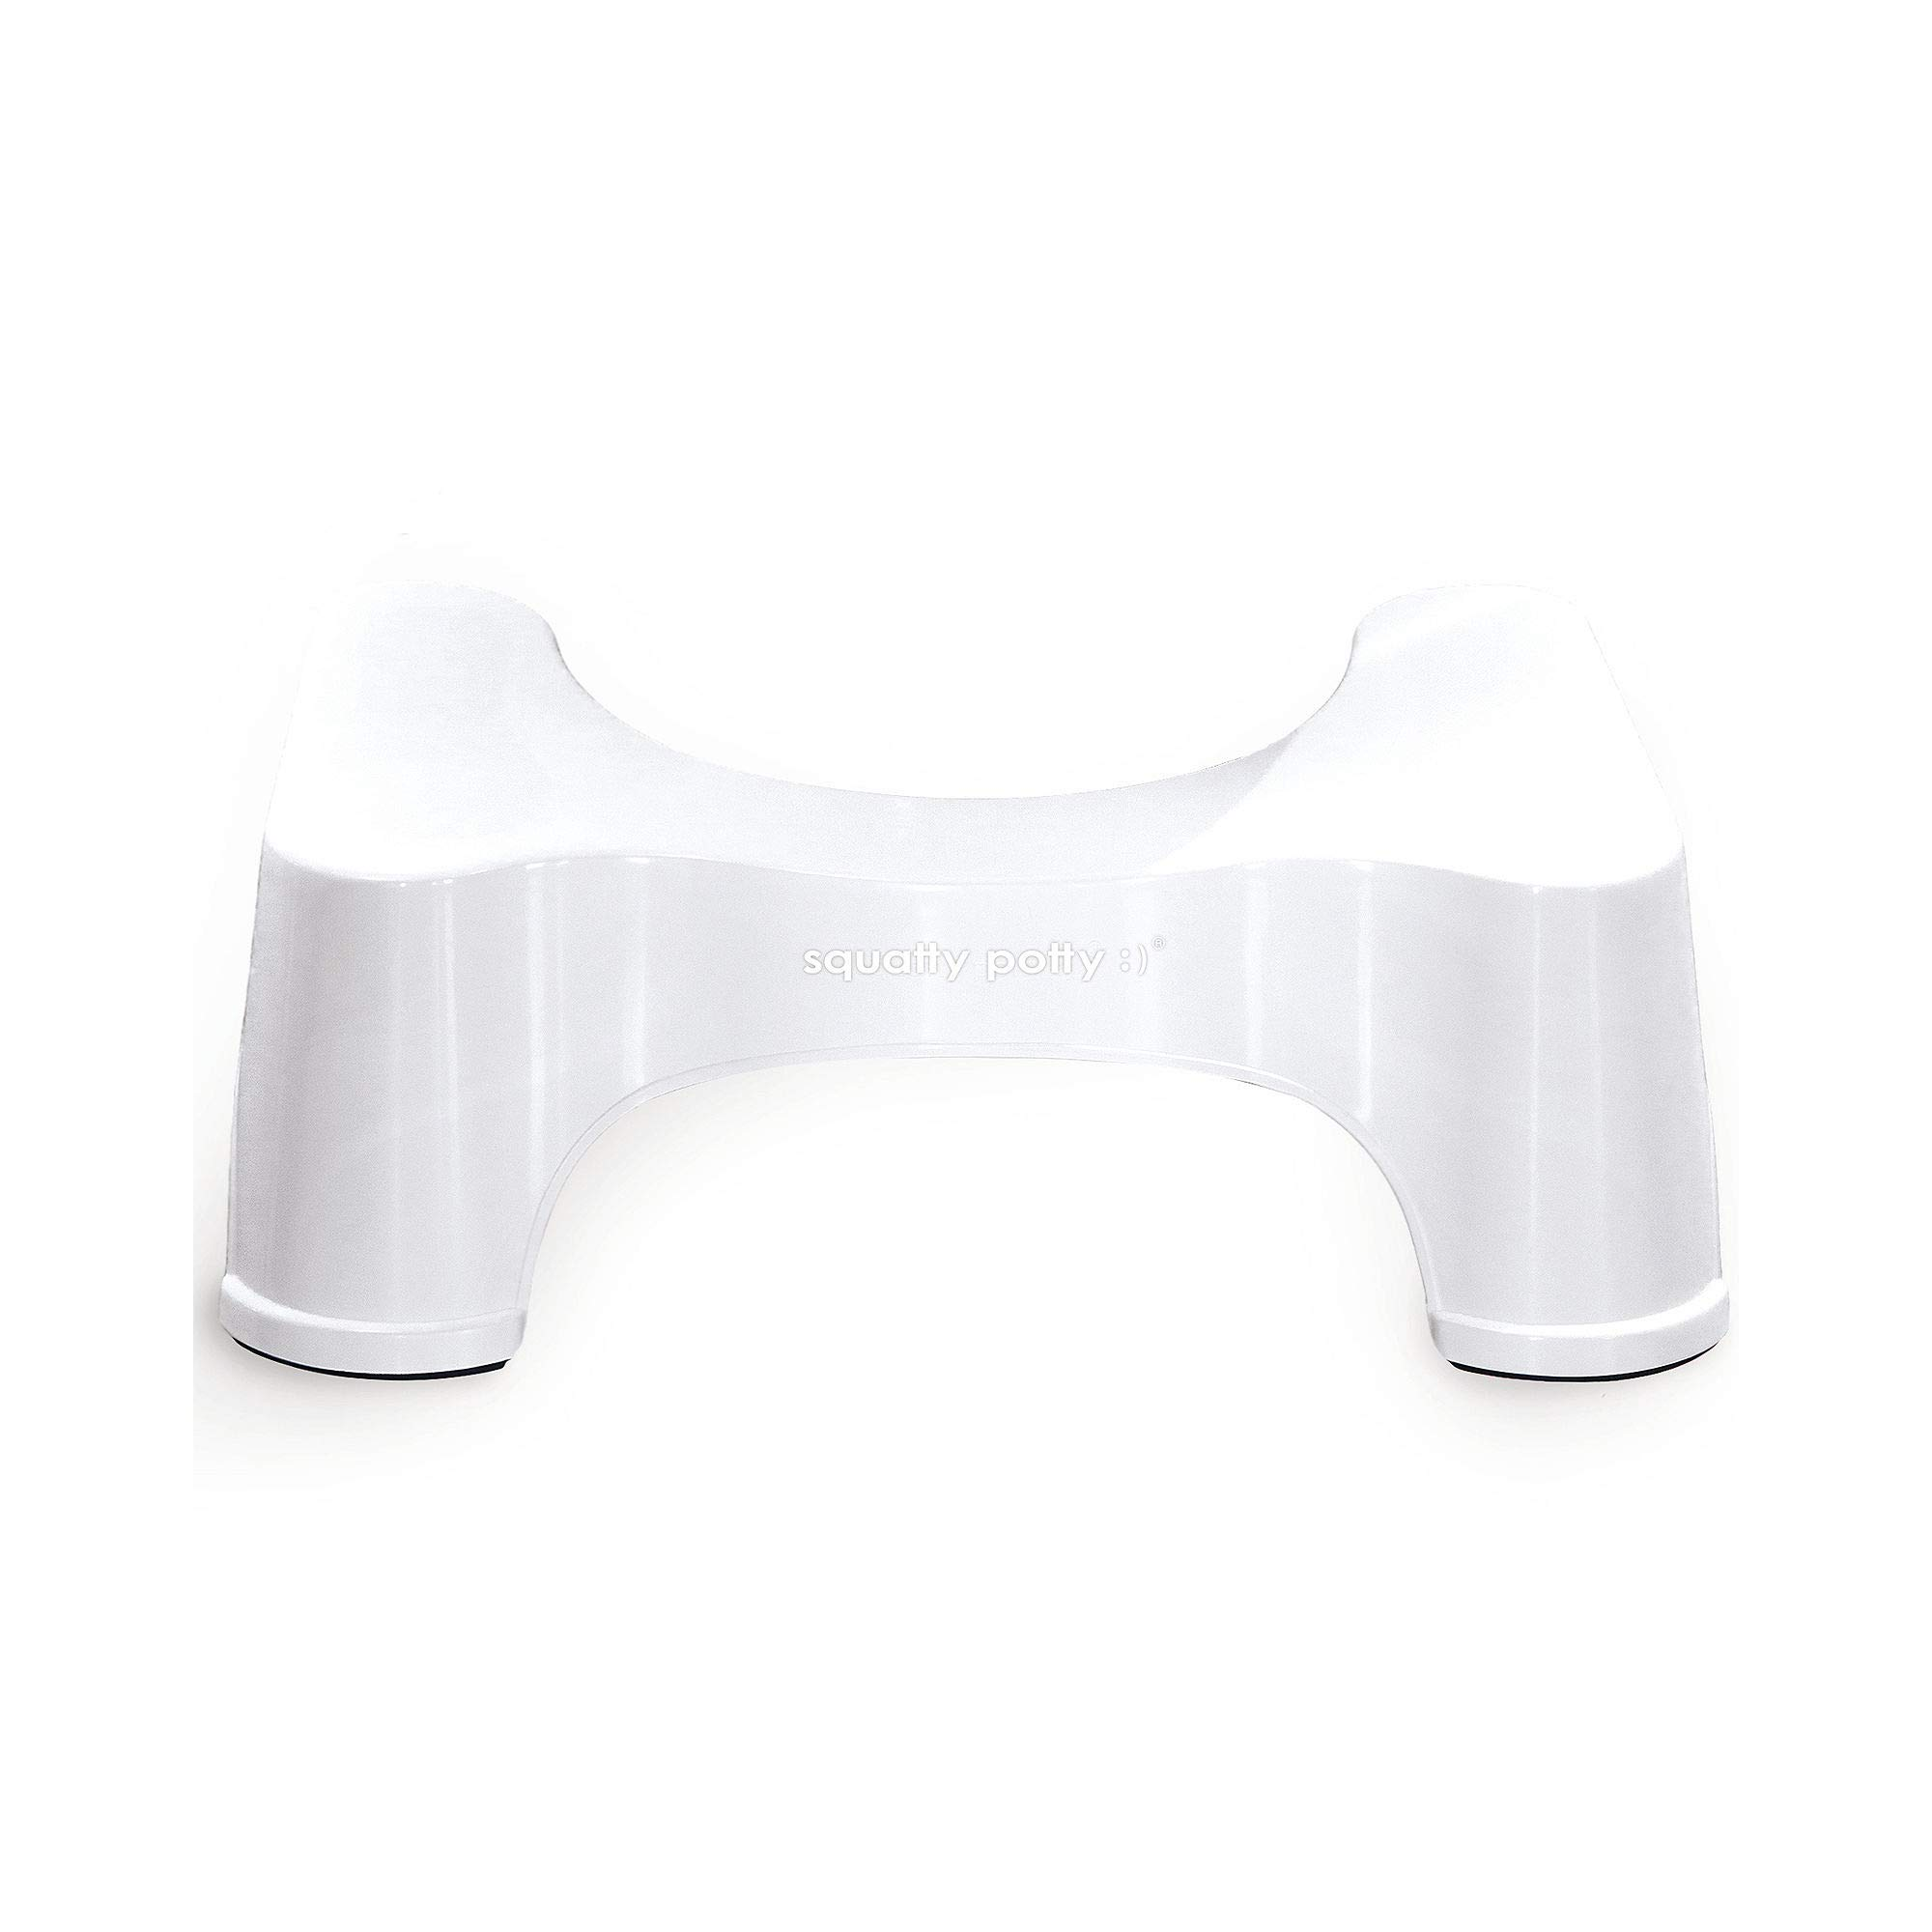 Squatty Potty :) Toilet Stool, 10 Pack by Squatty Potty :)